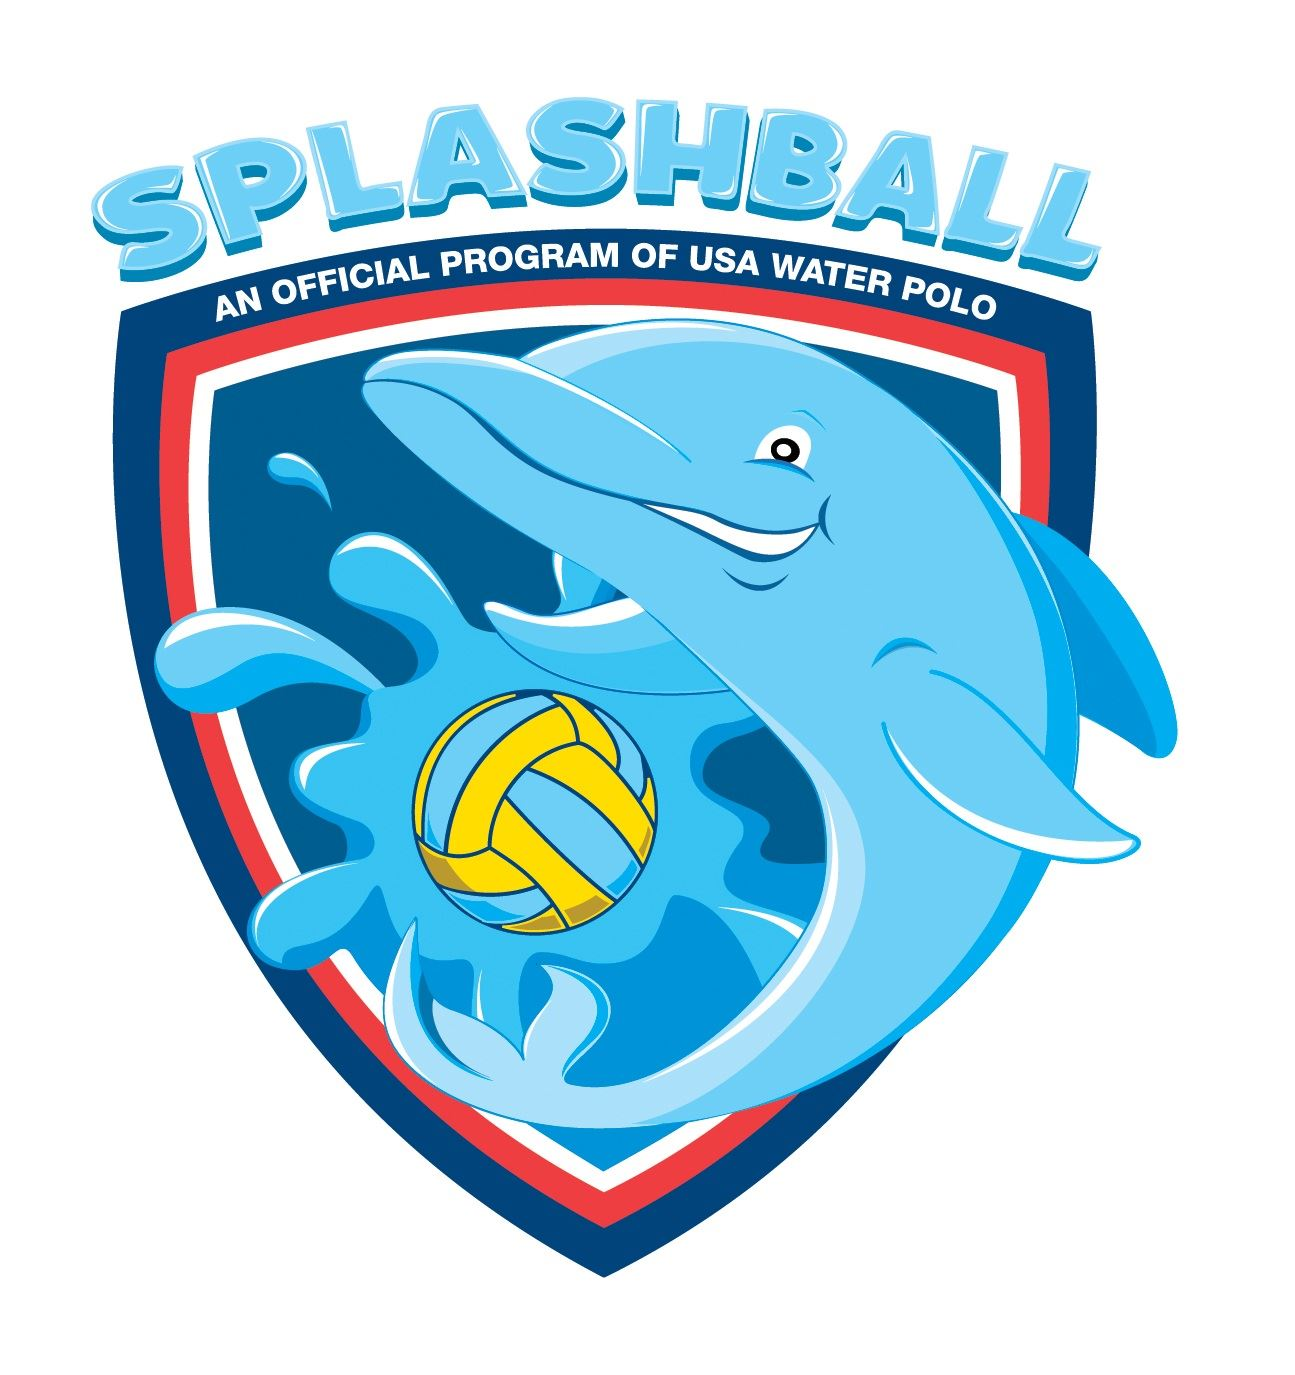 Splash Ball Logo